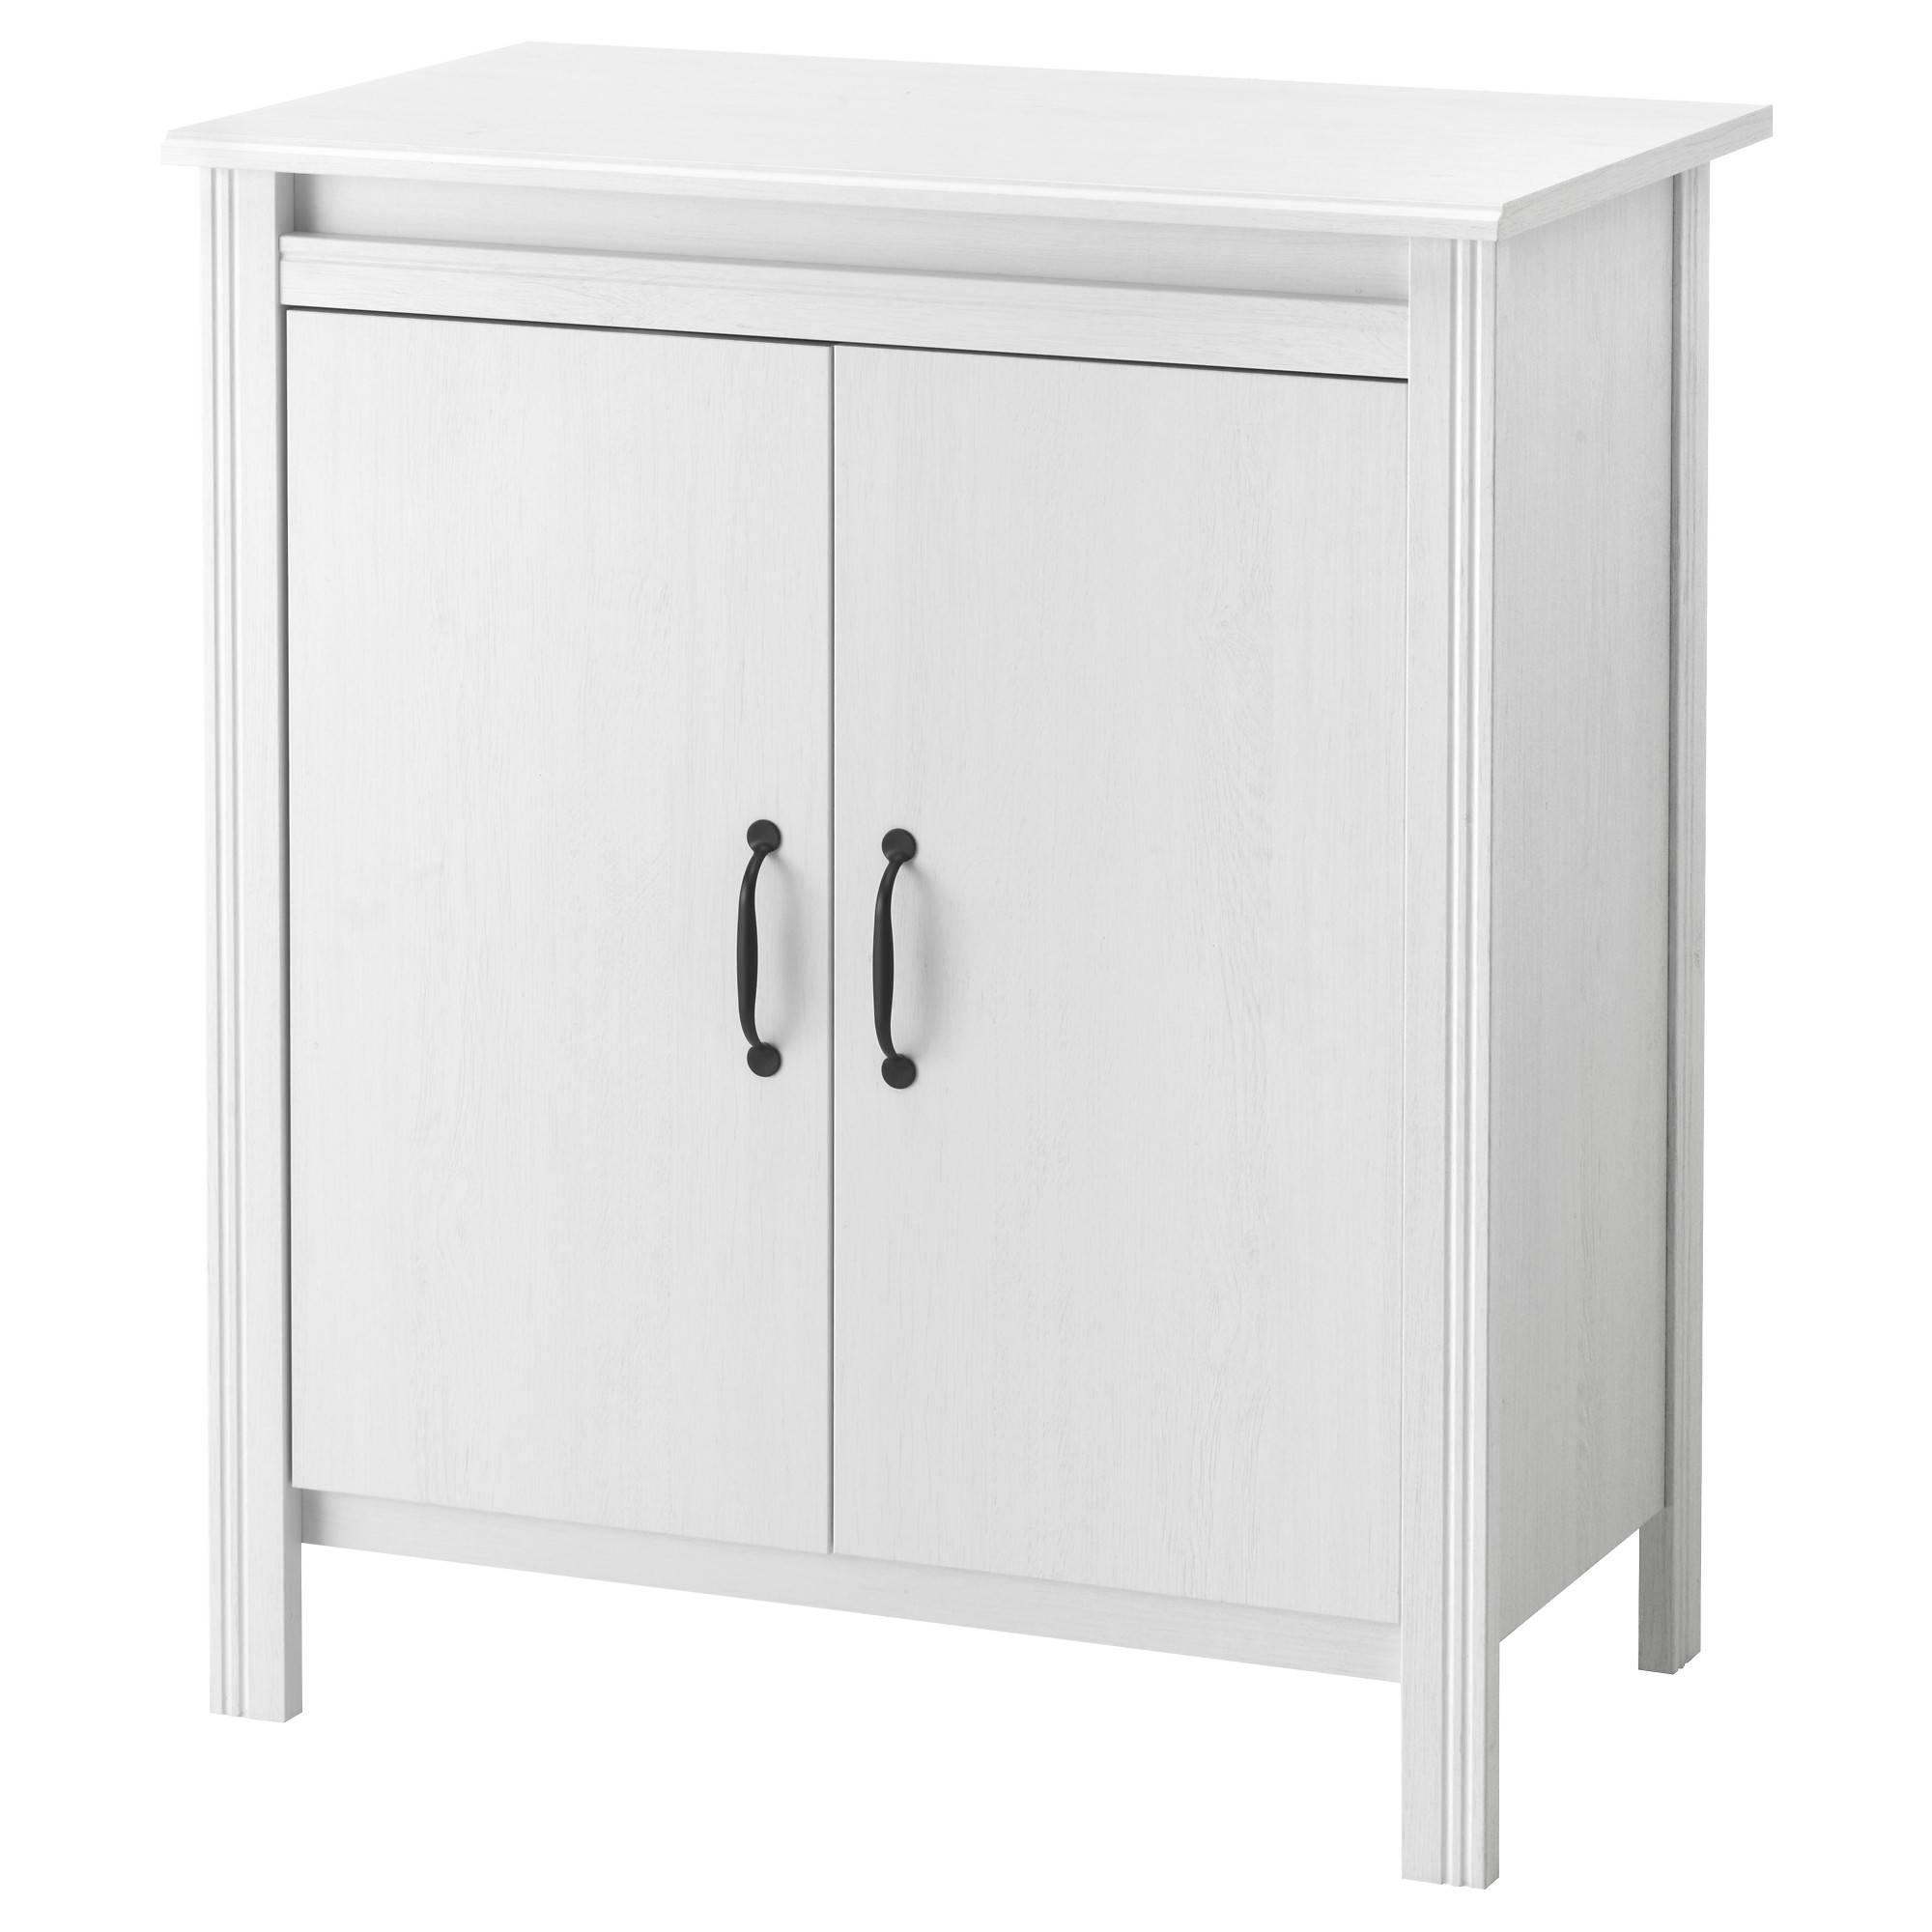 Cabinets & Sideboards – Ikea Intended For Recent 14 Inch Deep Sideboards (#9 of 15)